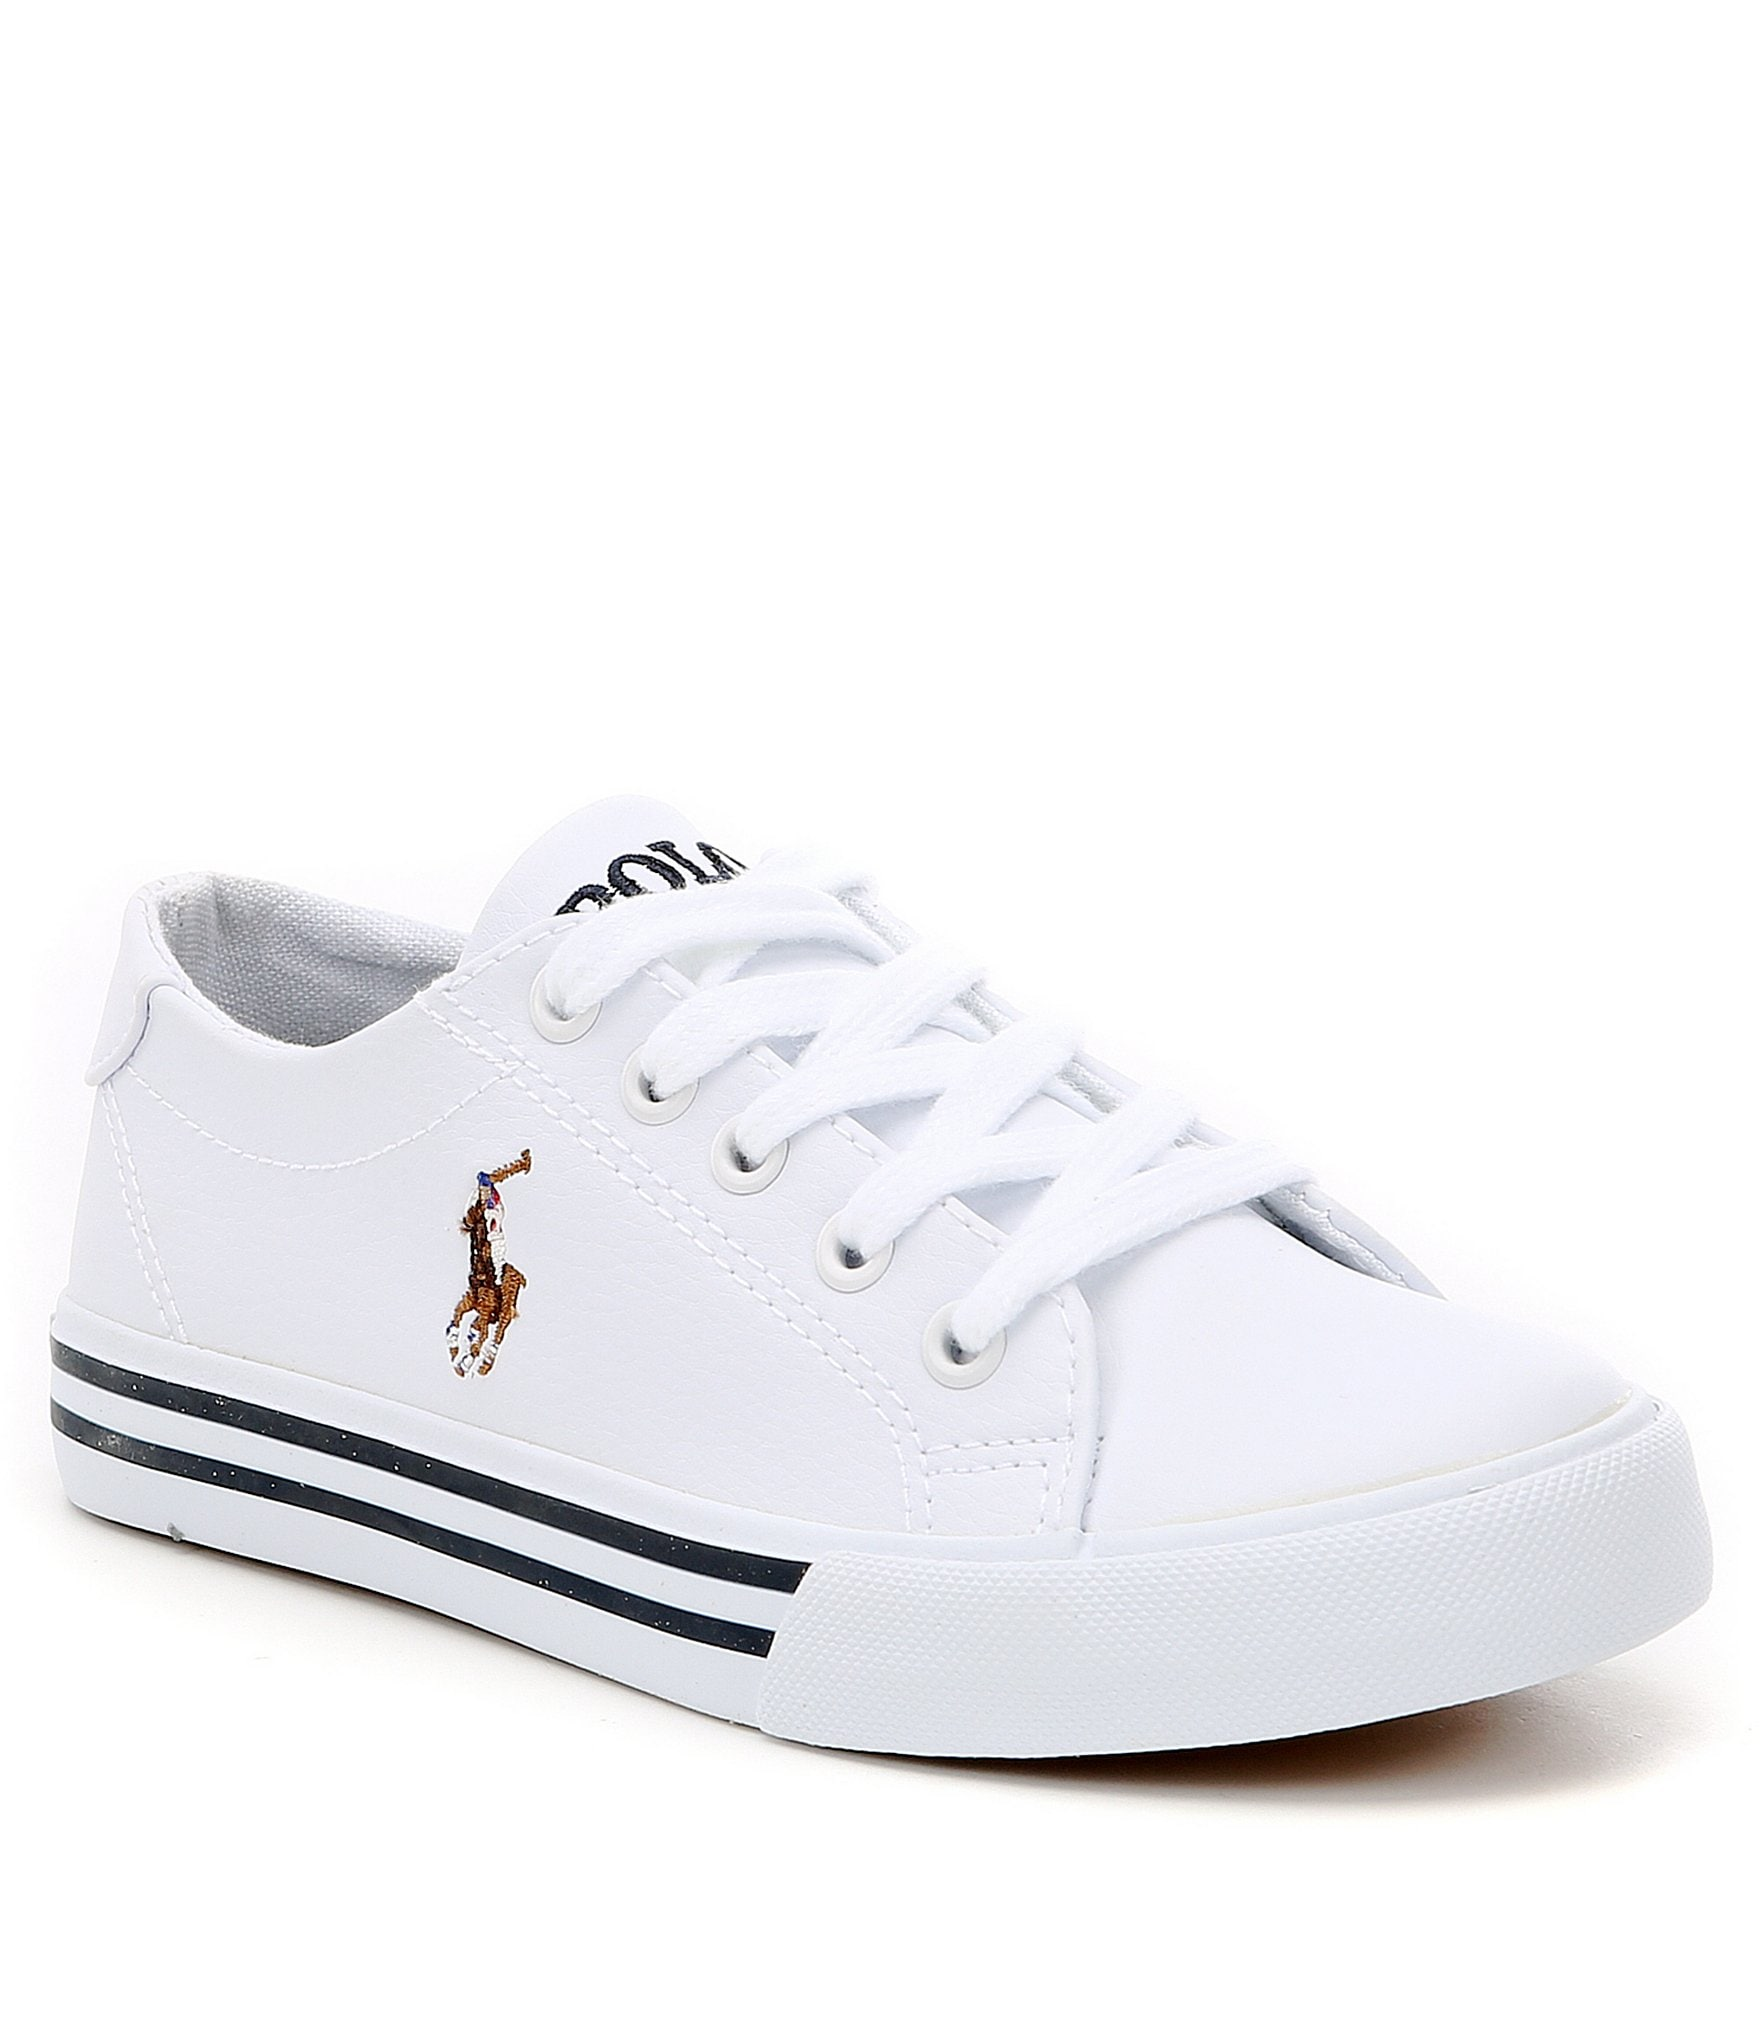 Polo Ralph Lauren Shoes Size Chart